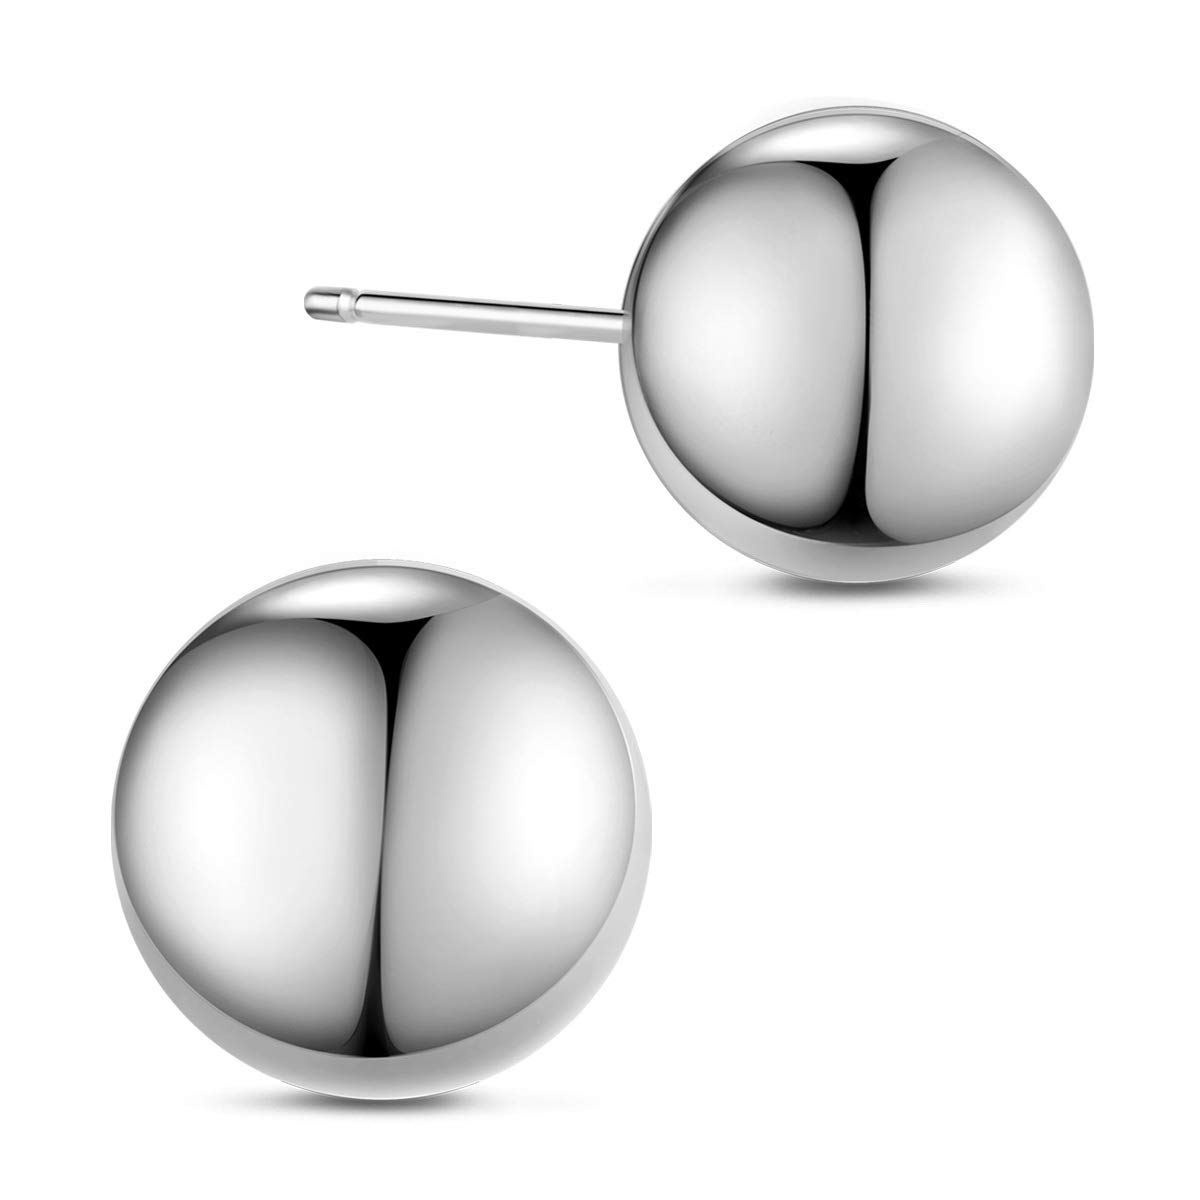 SHEGRACE Round Ball Stud Earrings 925 Sterling Silver Platinum Plated Earring for Woman//Girls 3mm,5mm,8mm,10mm